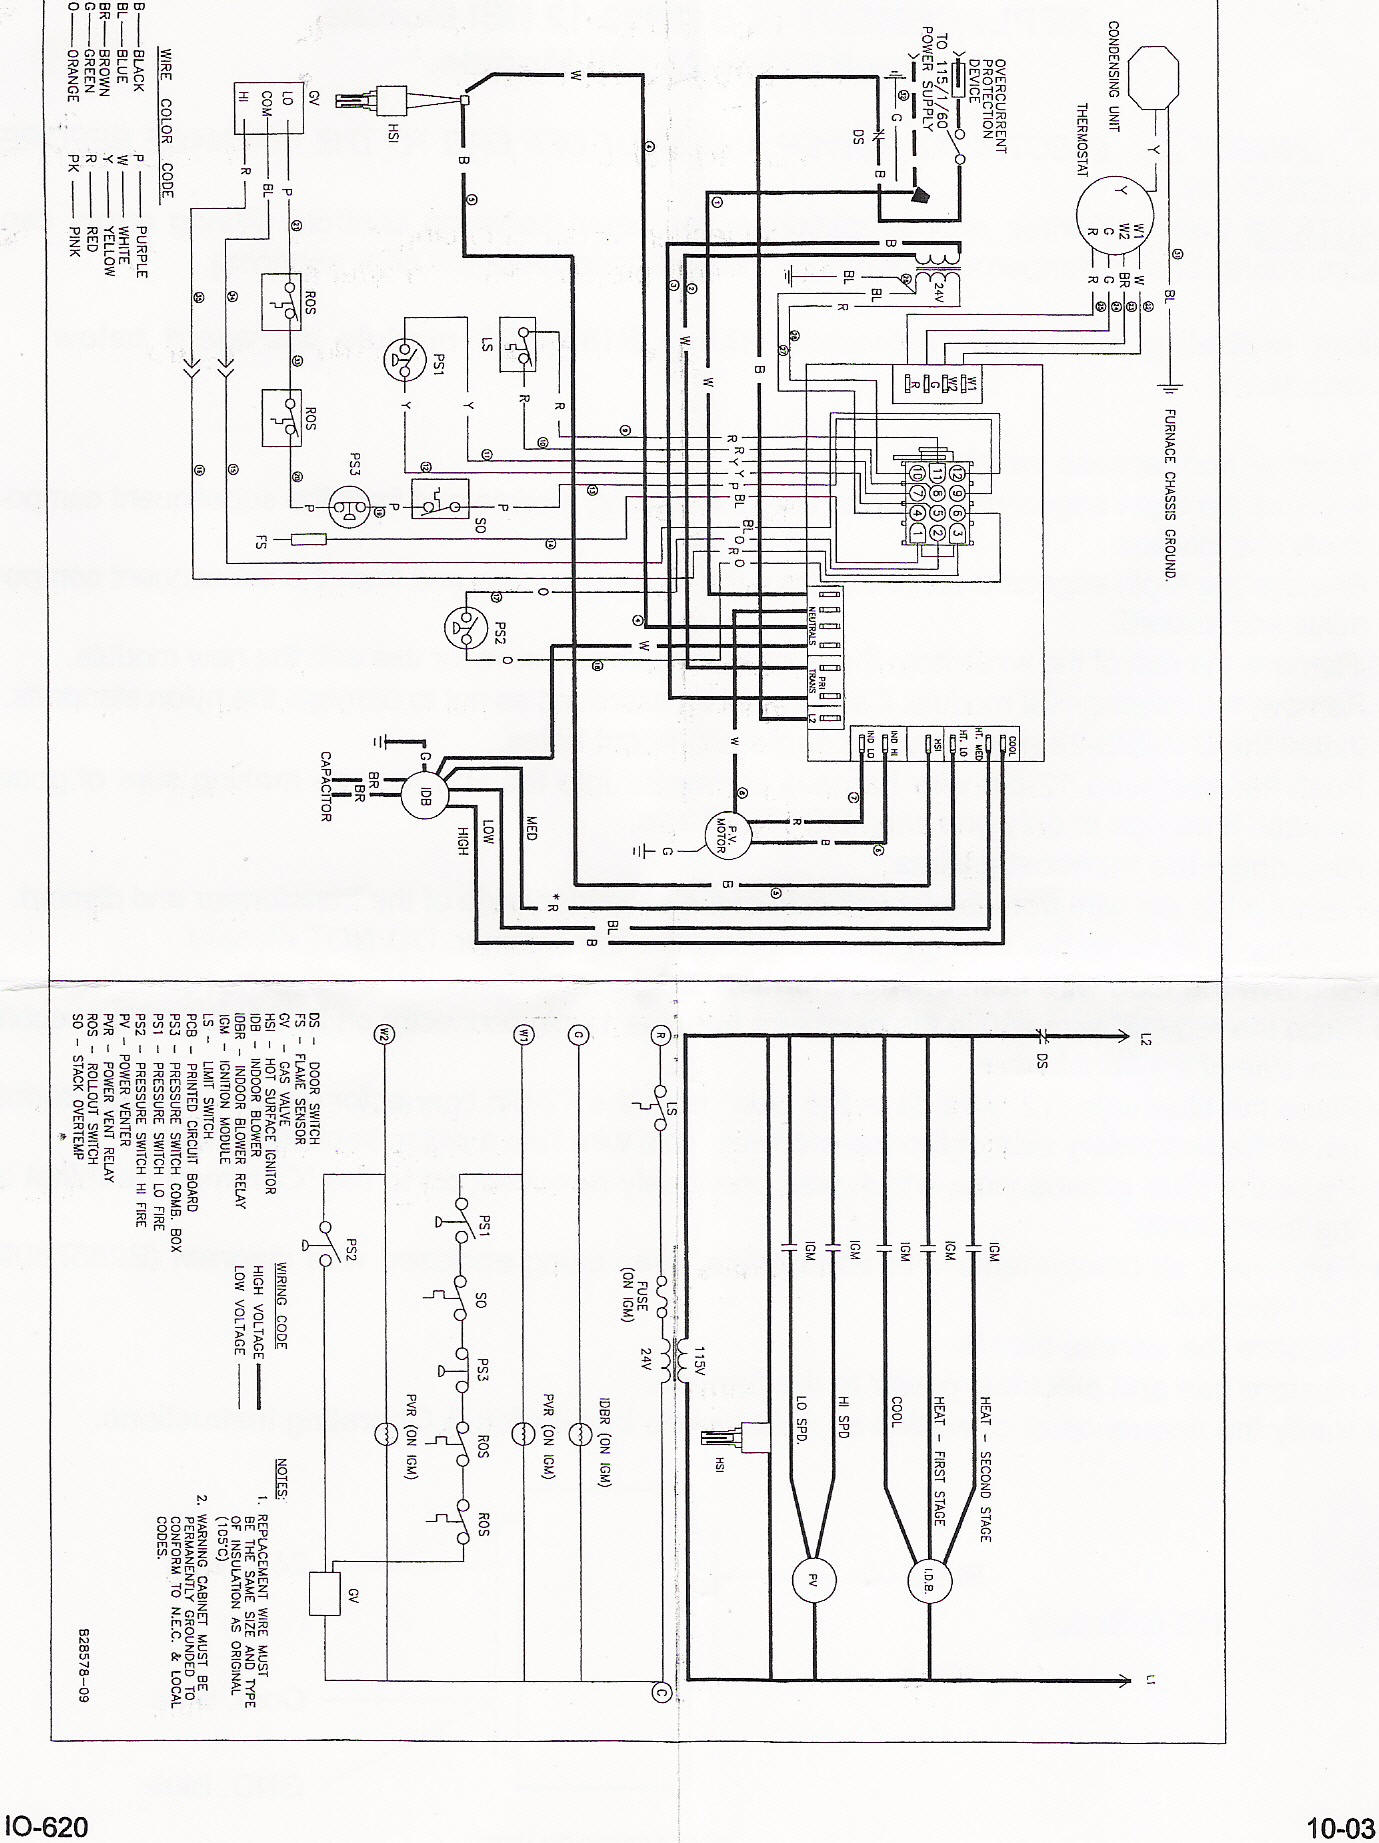 goodma2 instr york control board wiring diagram electric motor control circuit york heat pump wiring schematics at readyjetset.co